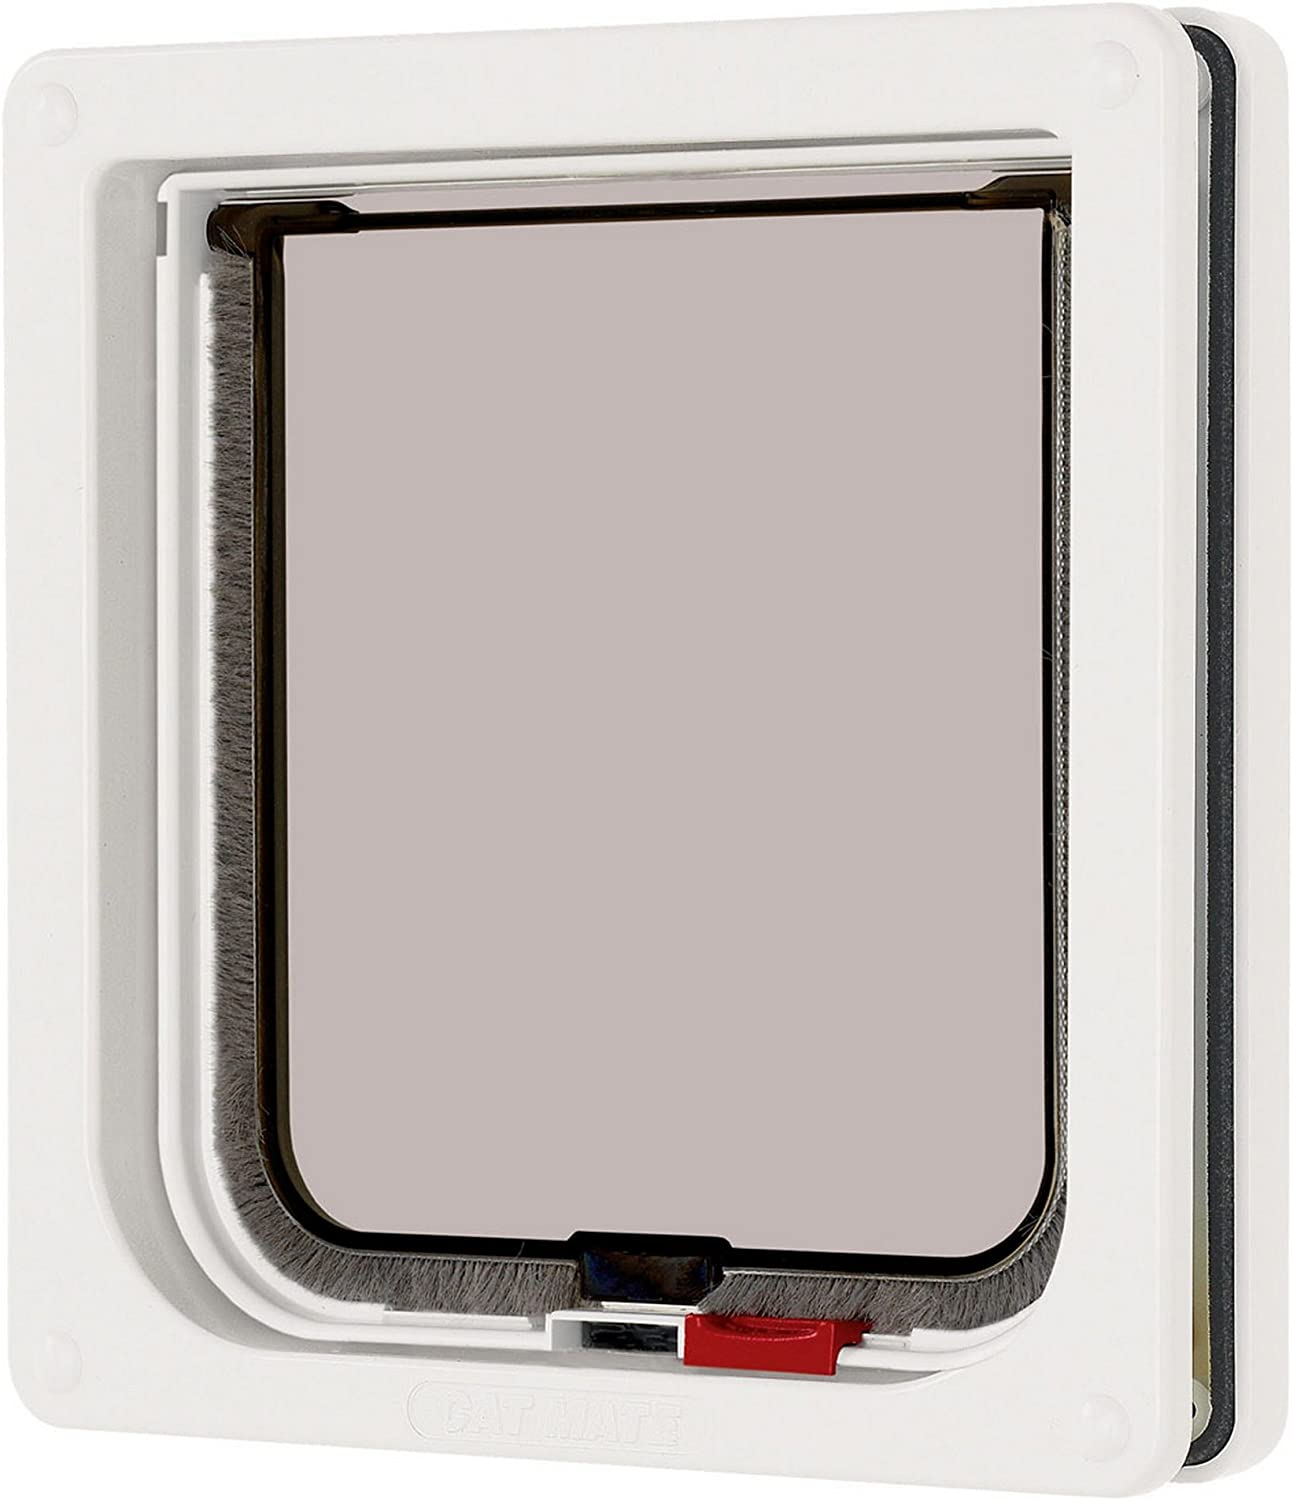 Ani Mate Inc Industry No. 1 Cat 304 Small Flap Locking Door White - Complete Free Shipping